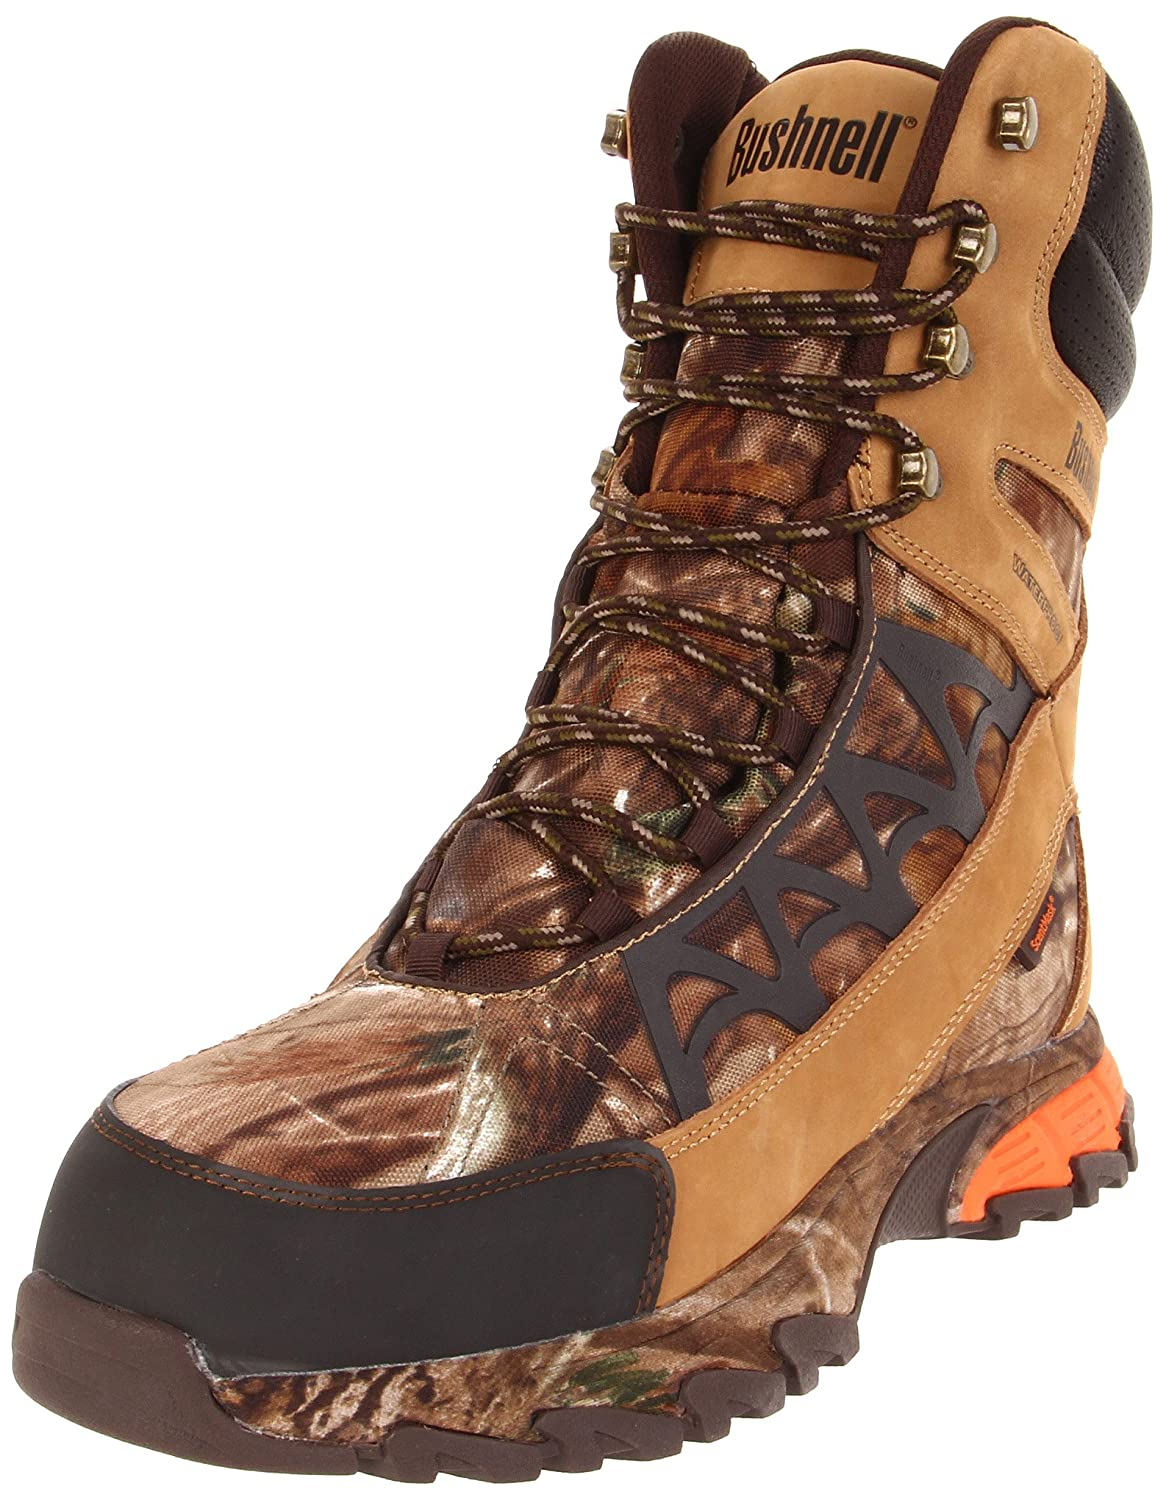 Bushnell Mountaineer Boot